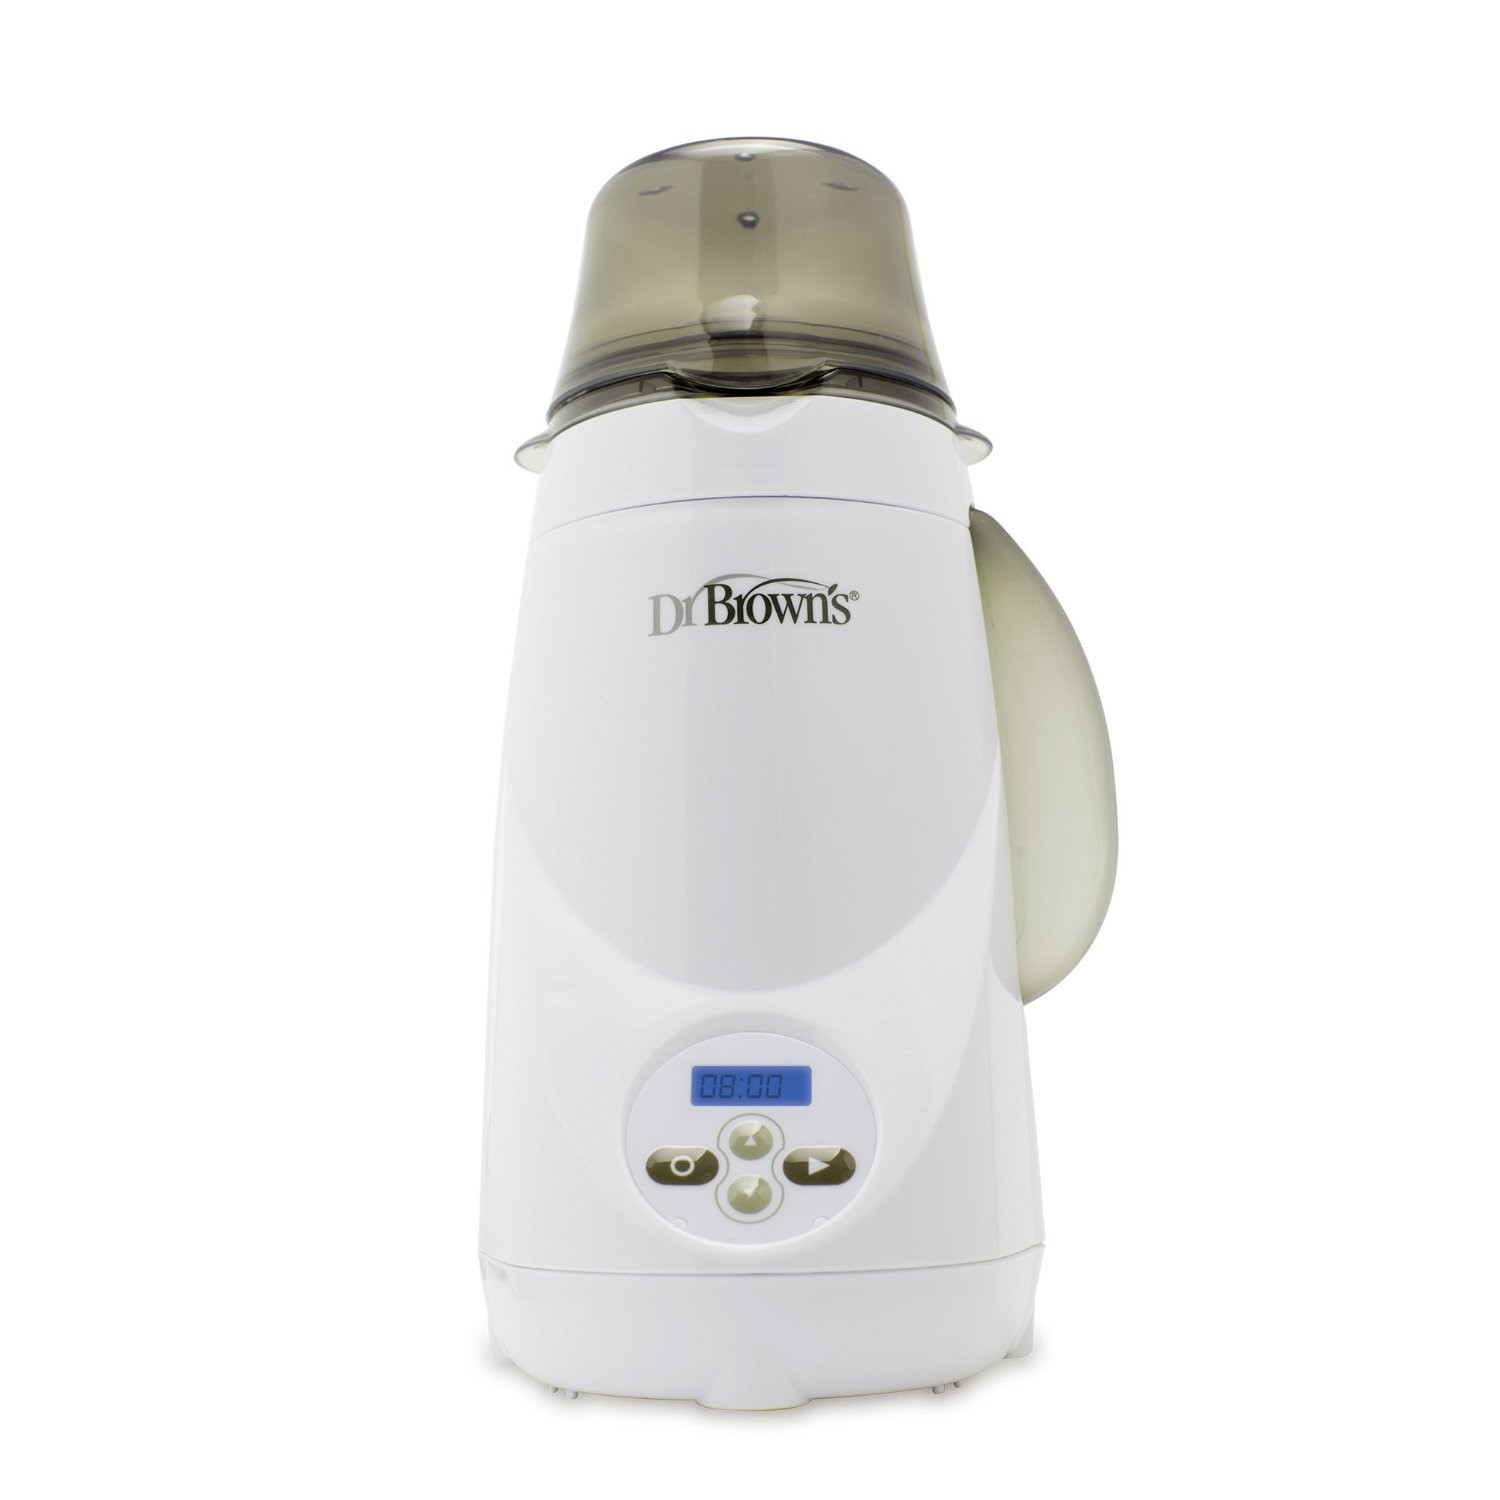 Dr. Brown's Deluxe Baby Bottles Warmer